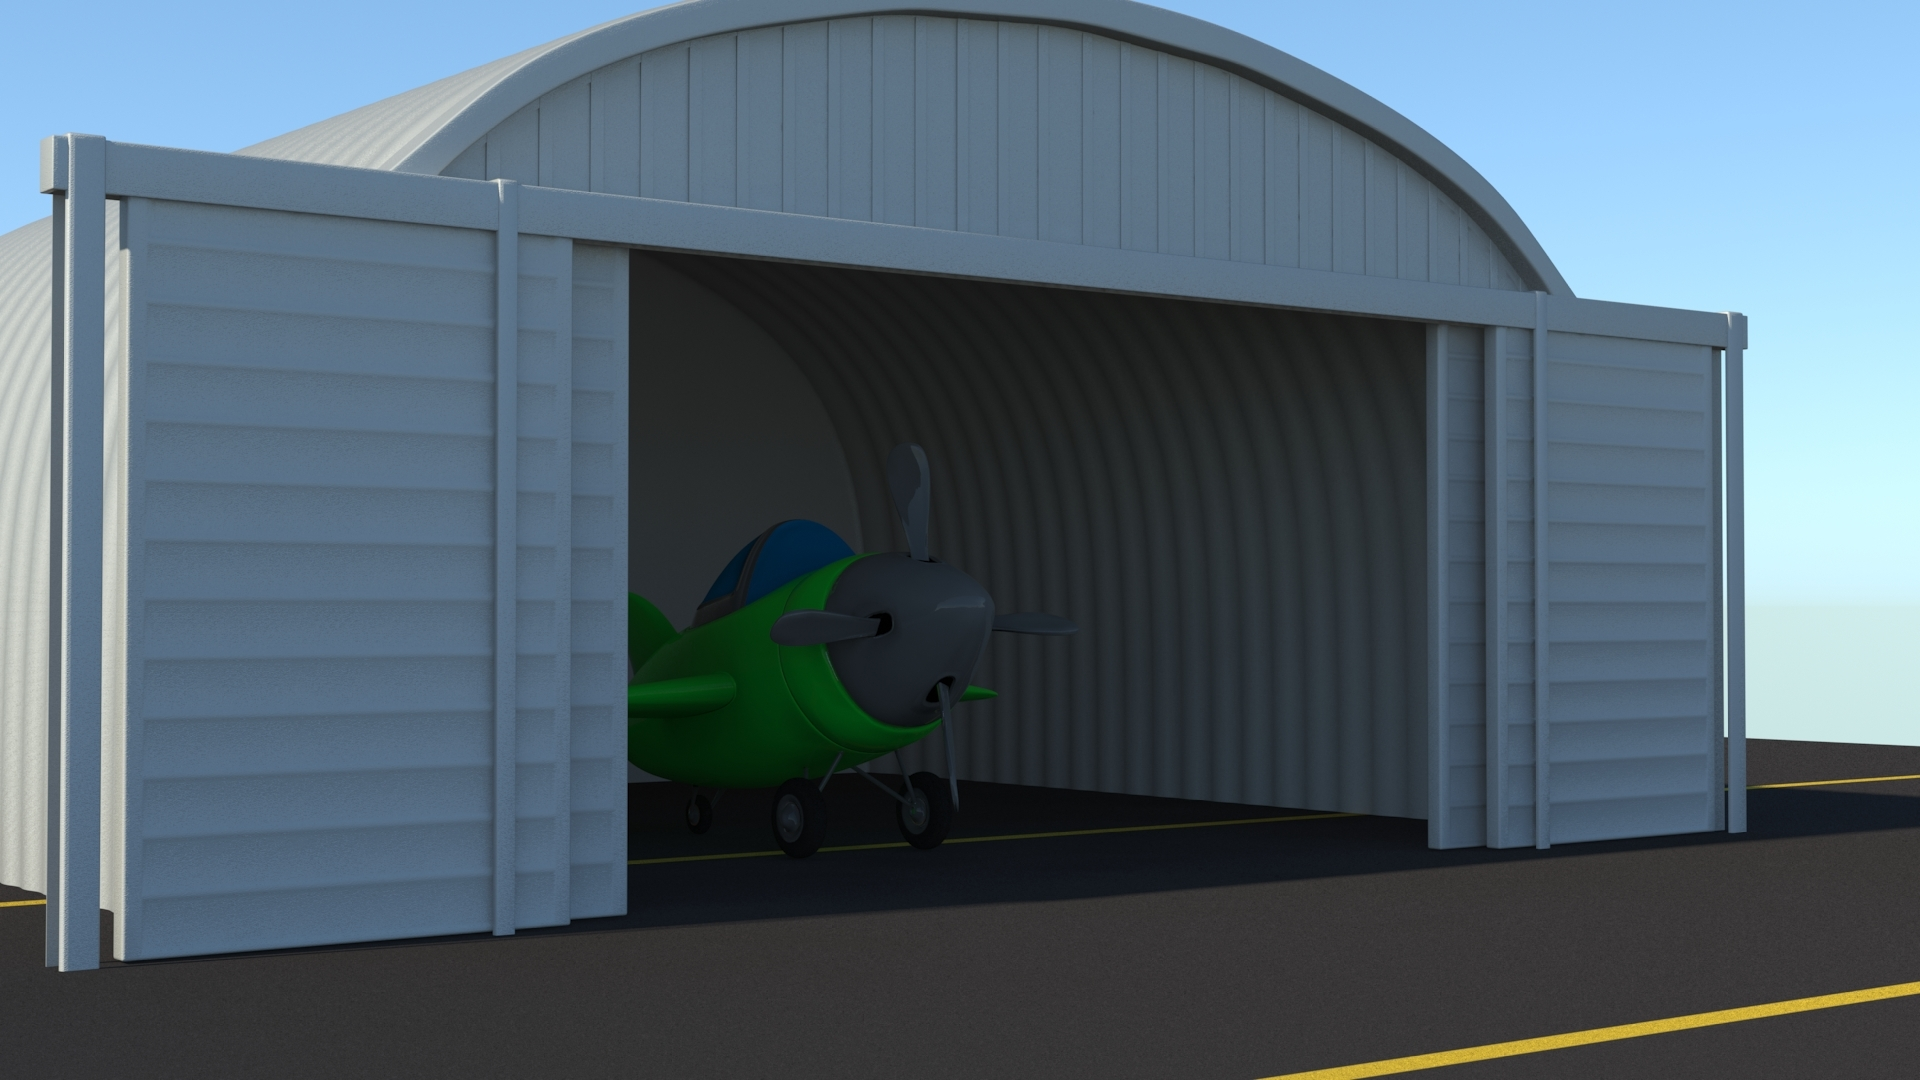 another shot of the hanger